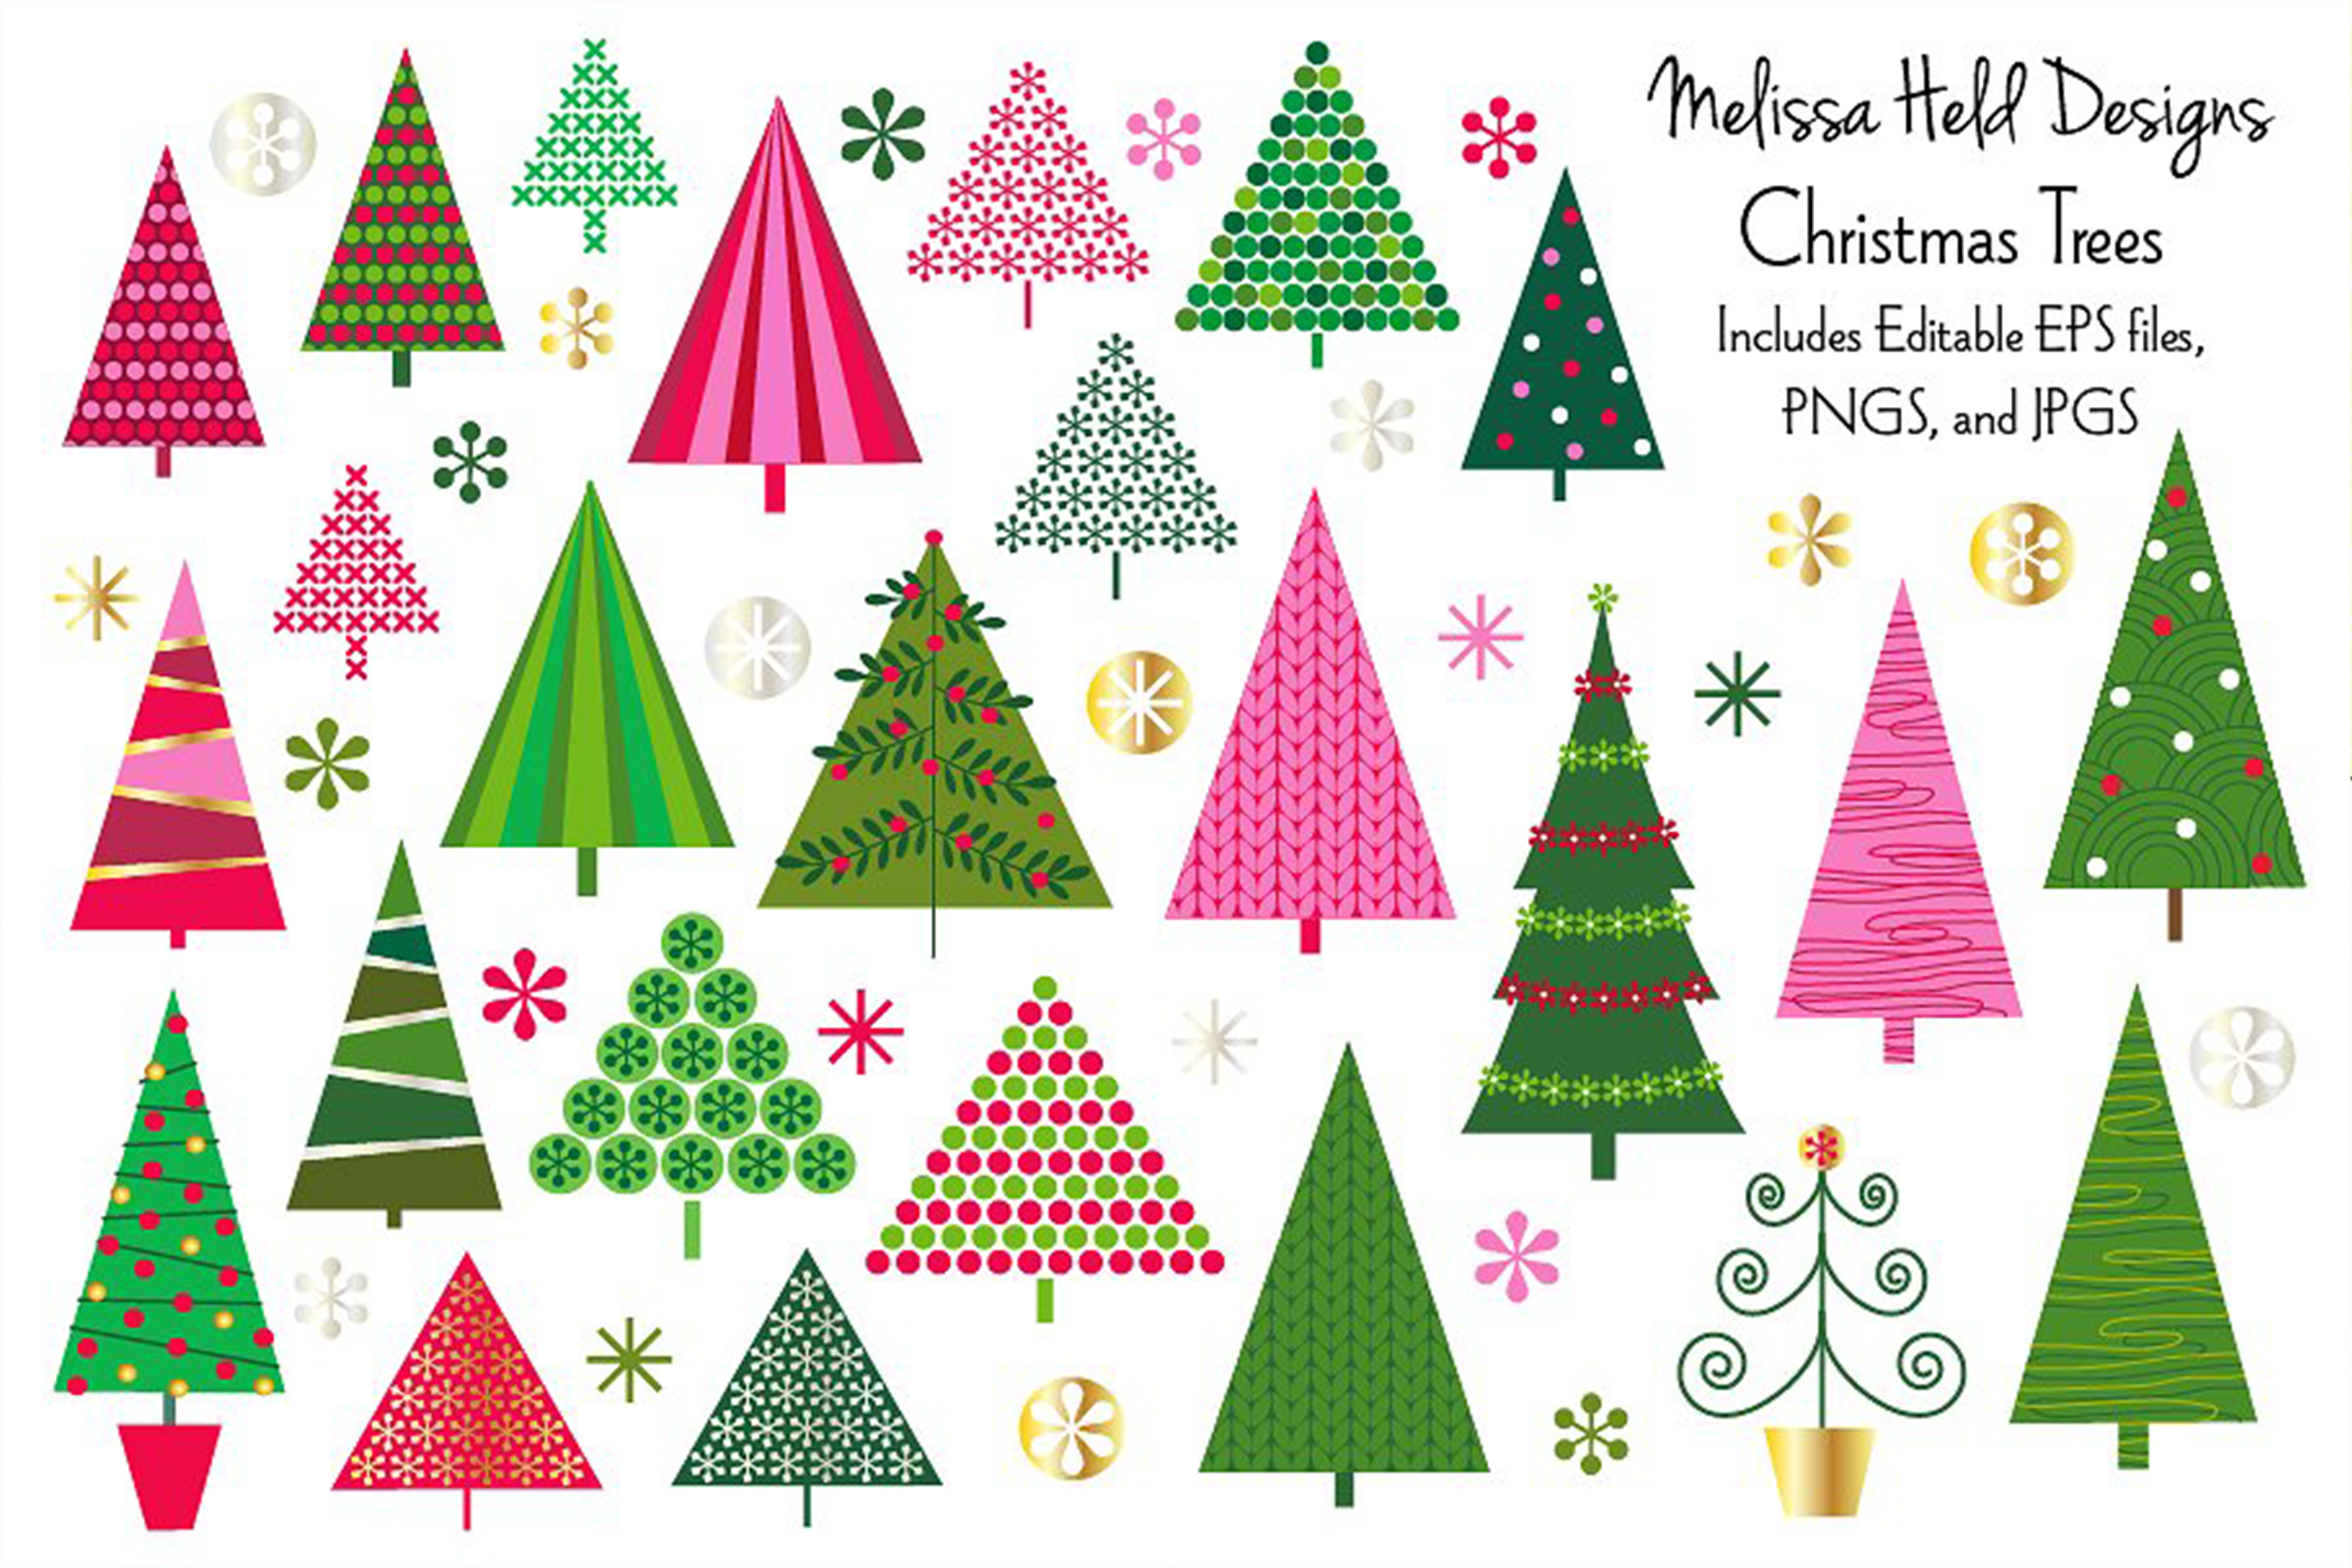 Christmas Trees Clipart Christmas tree clipart, Clip art